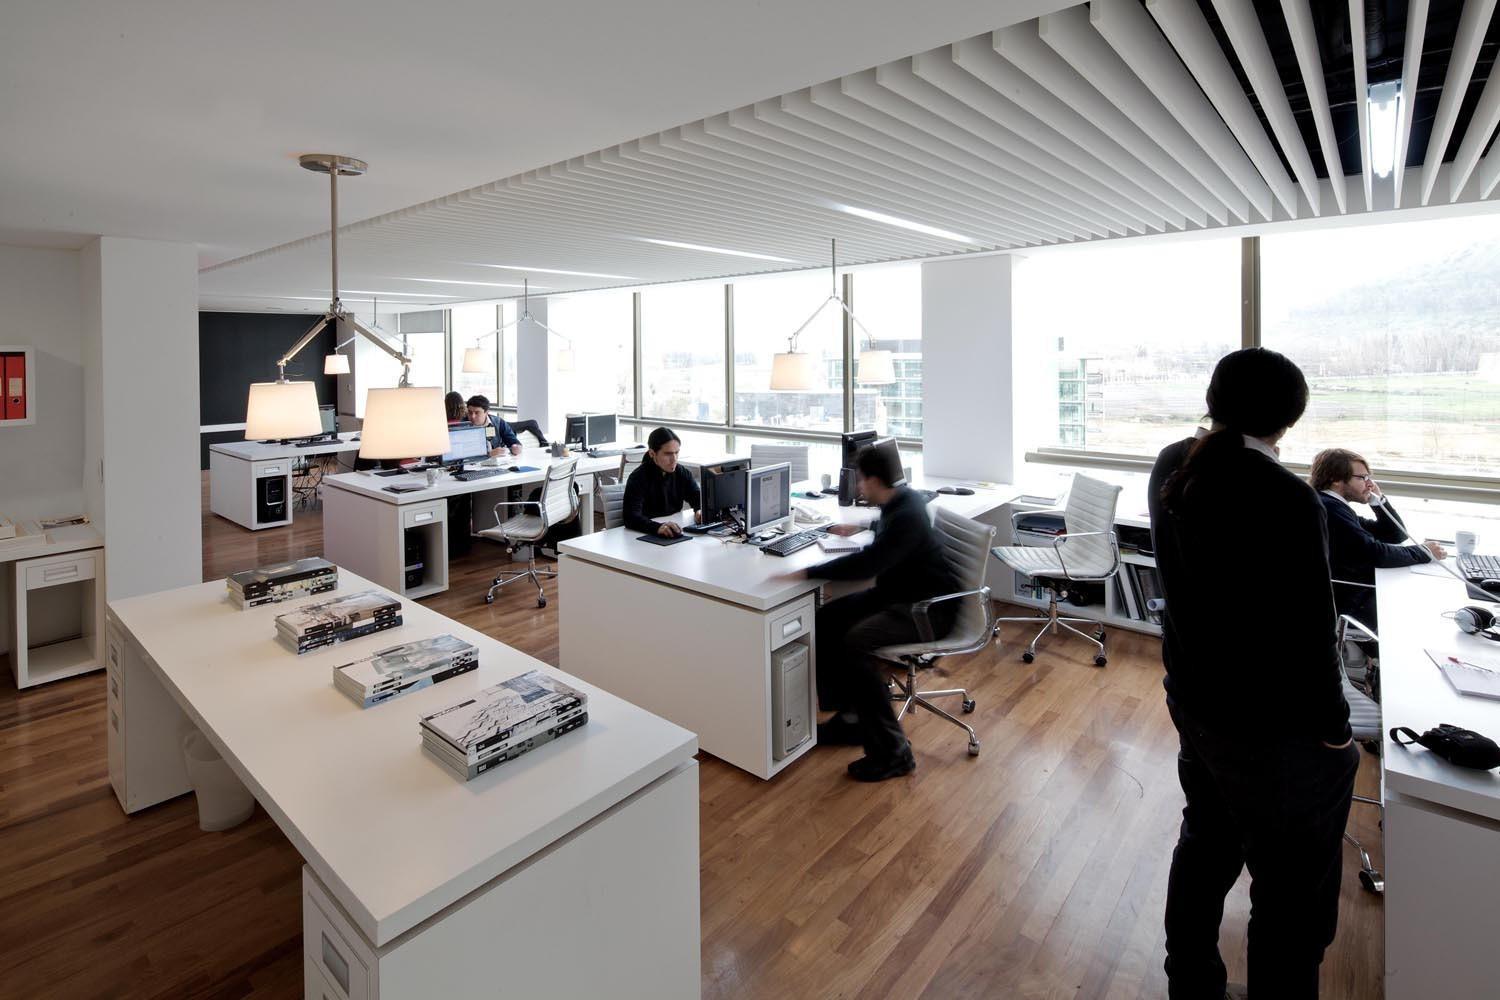 Arquitectura De Oficinas Of Oficinas Kitcorp Nicol S Lipthay Kitcorp Plataforma